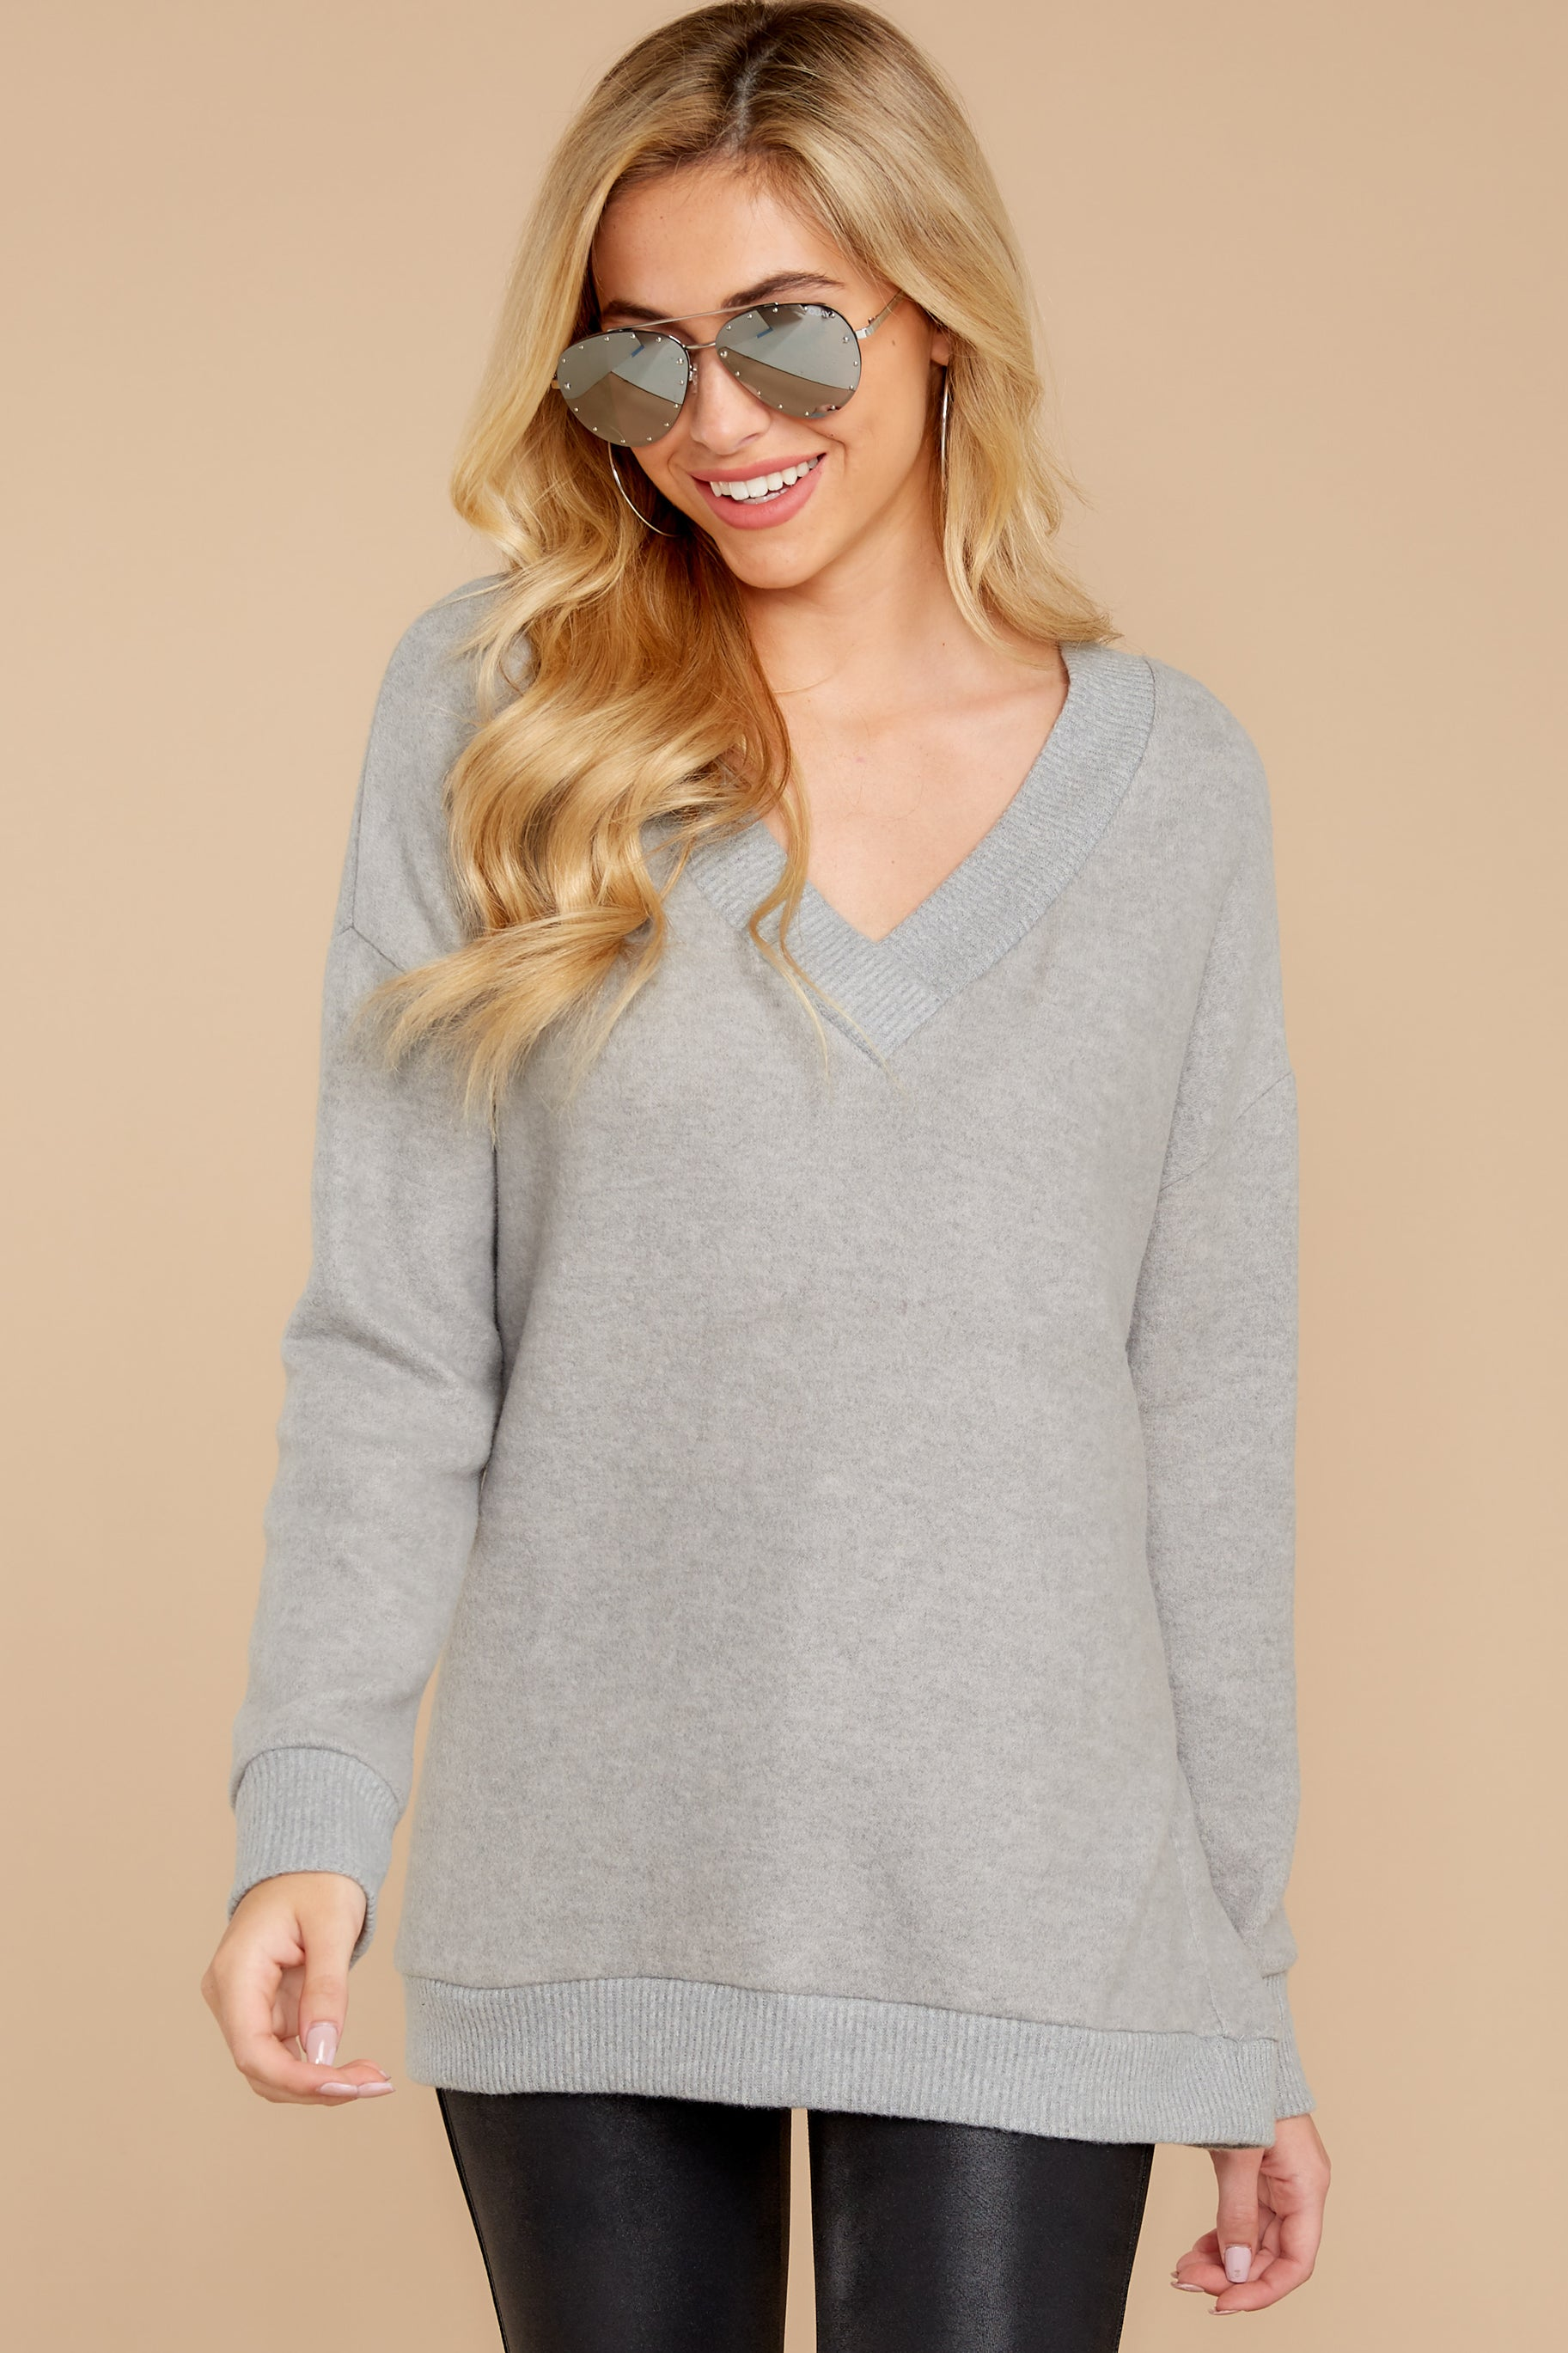 7 Soon Enough Heather Grey Sweater at reddressboutique.com